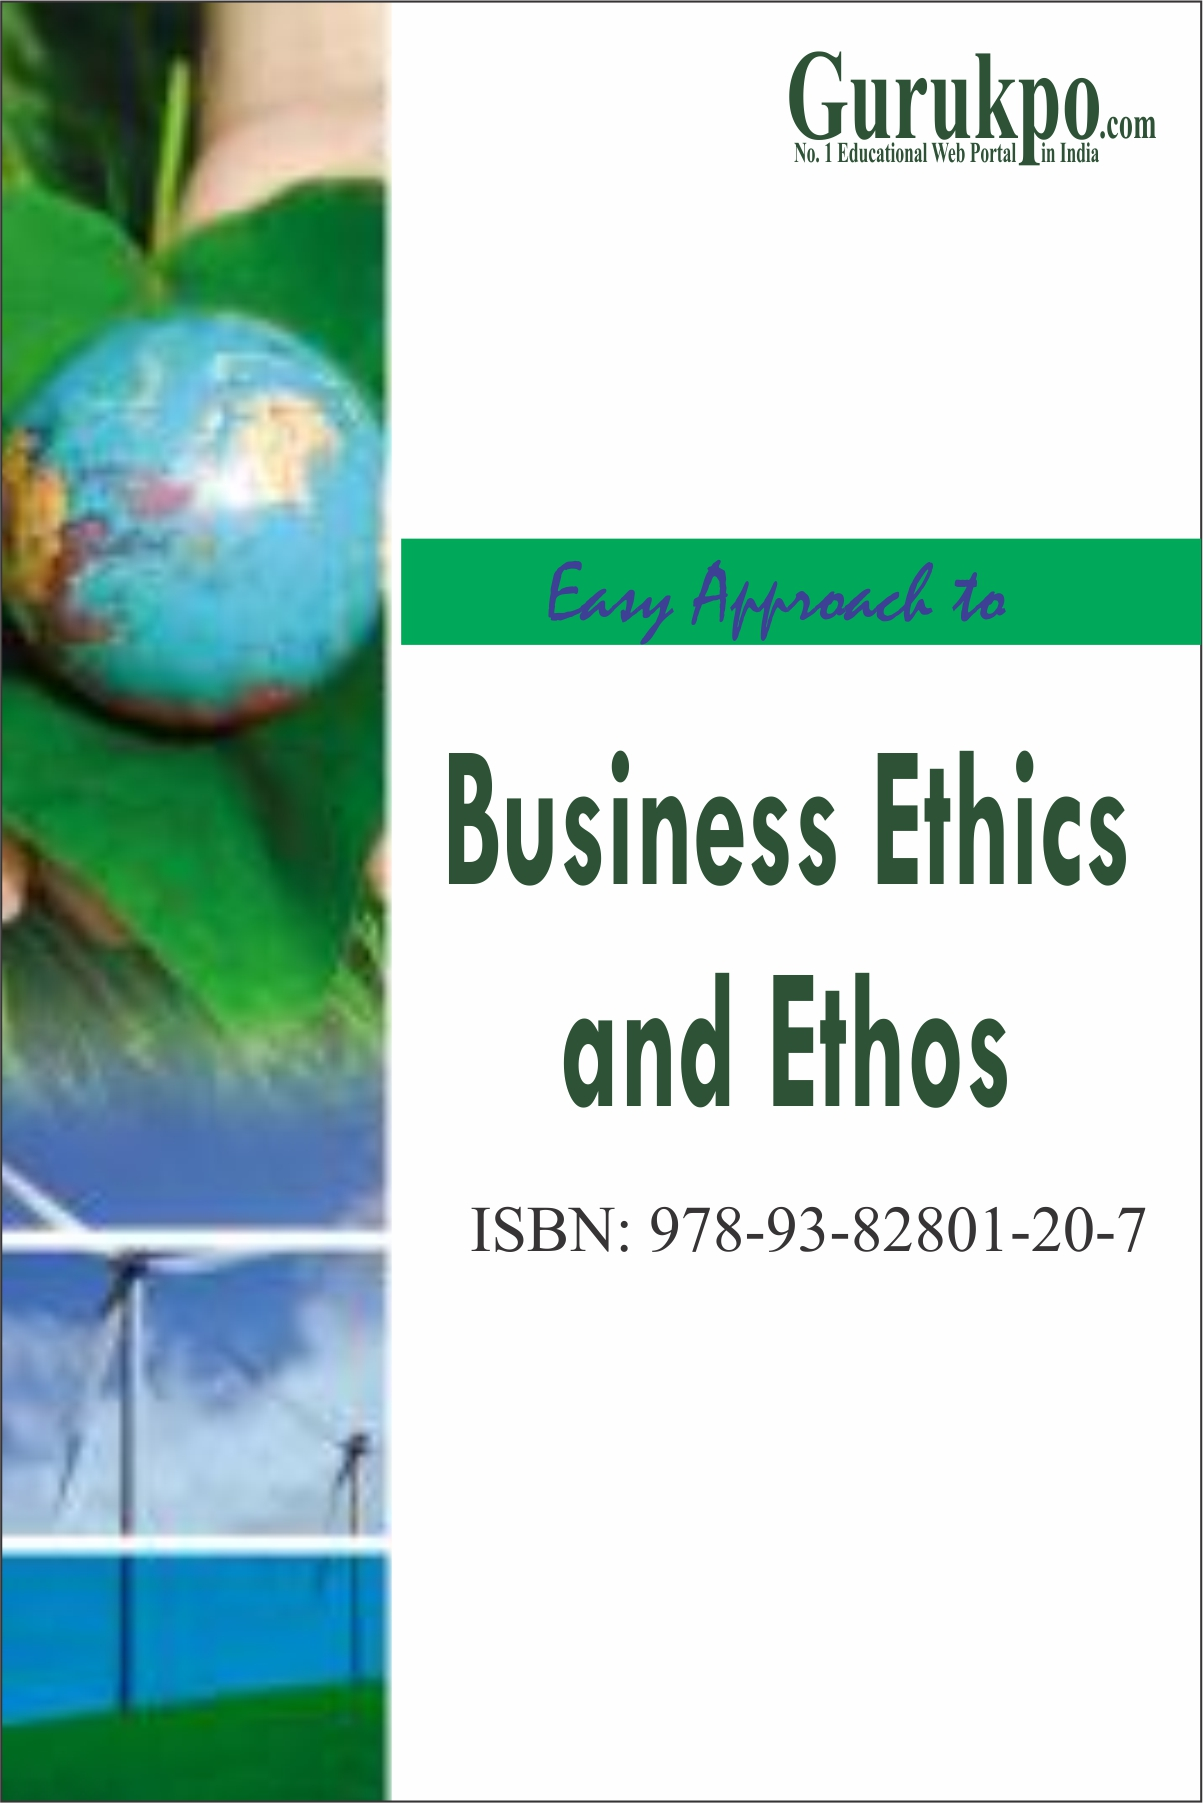 Business Ethics and Ethos | Free Study Notes for MBA MCA BBA